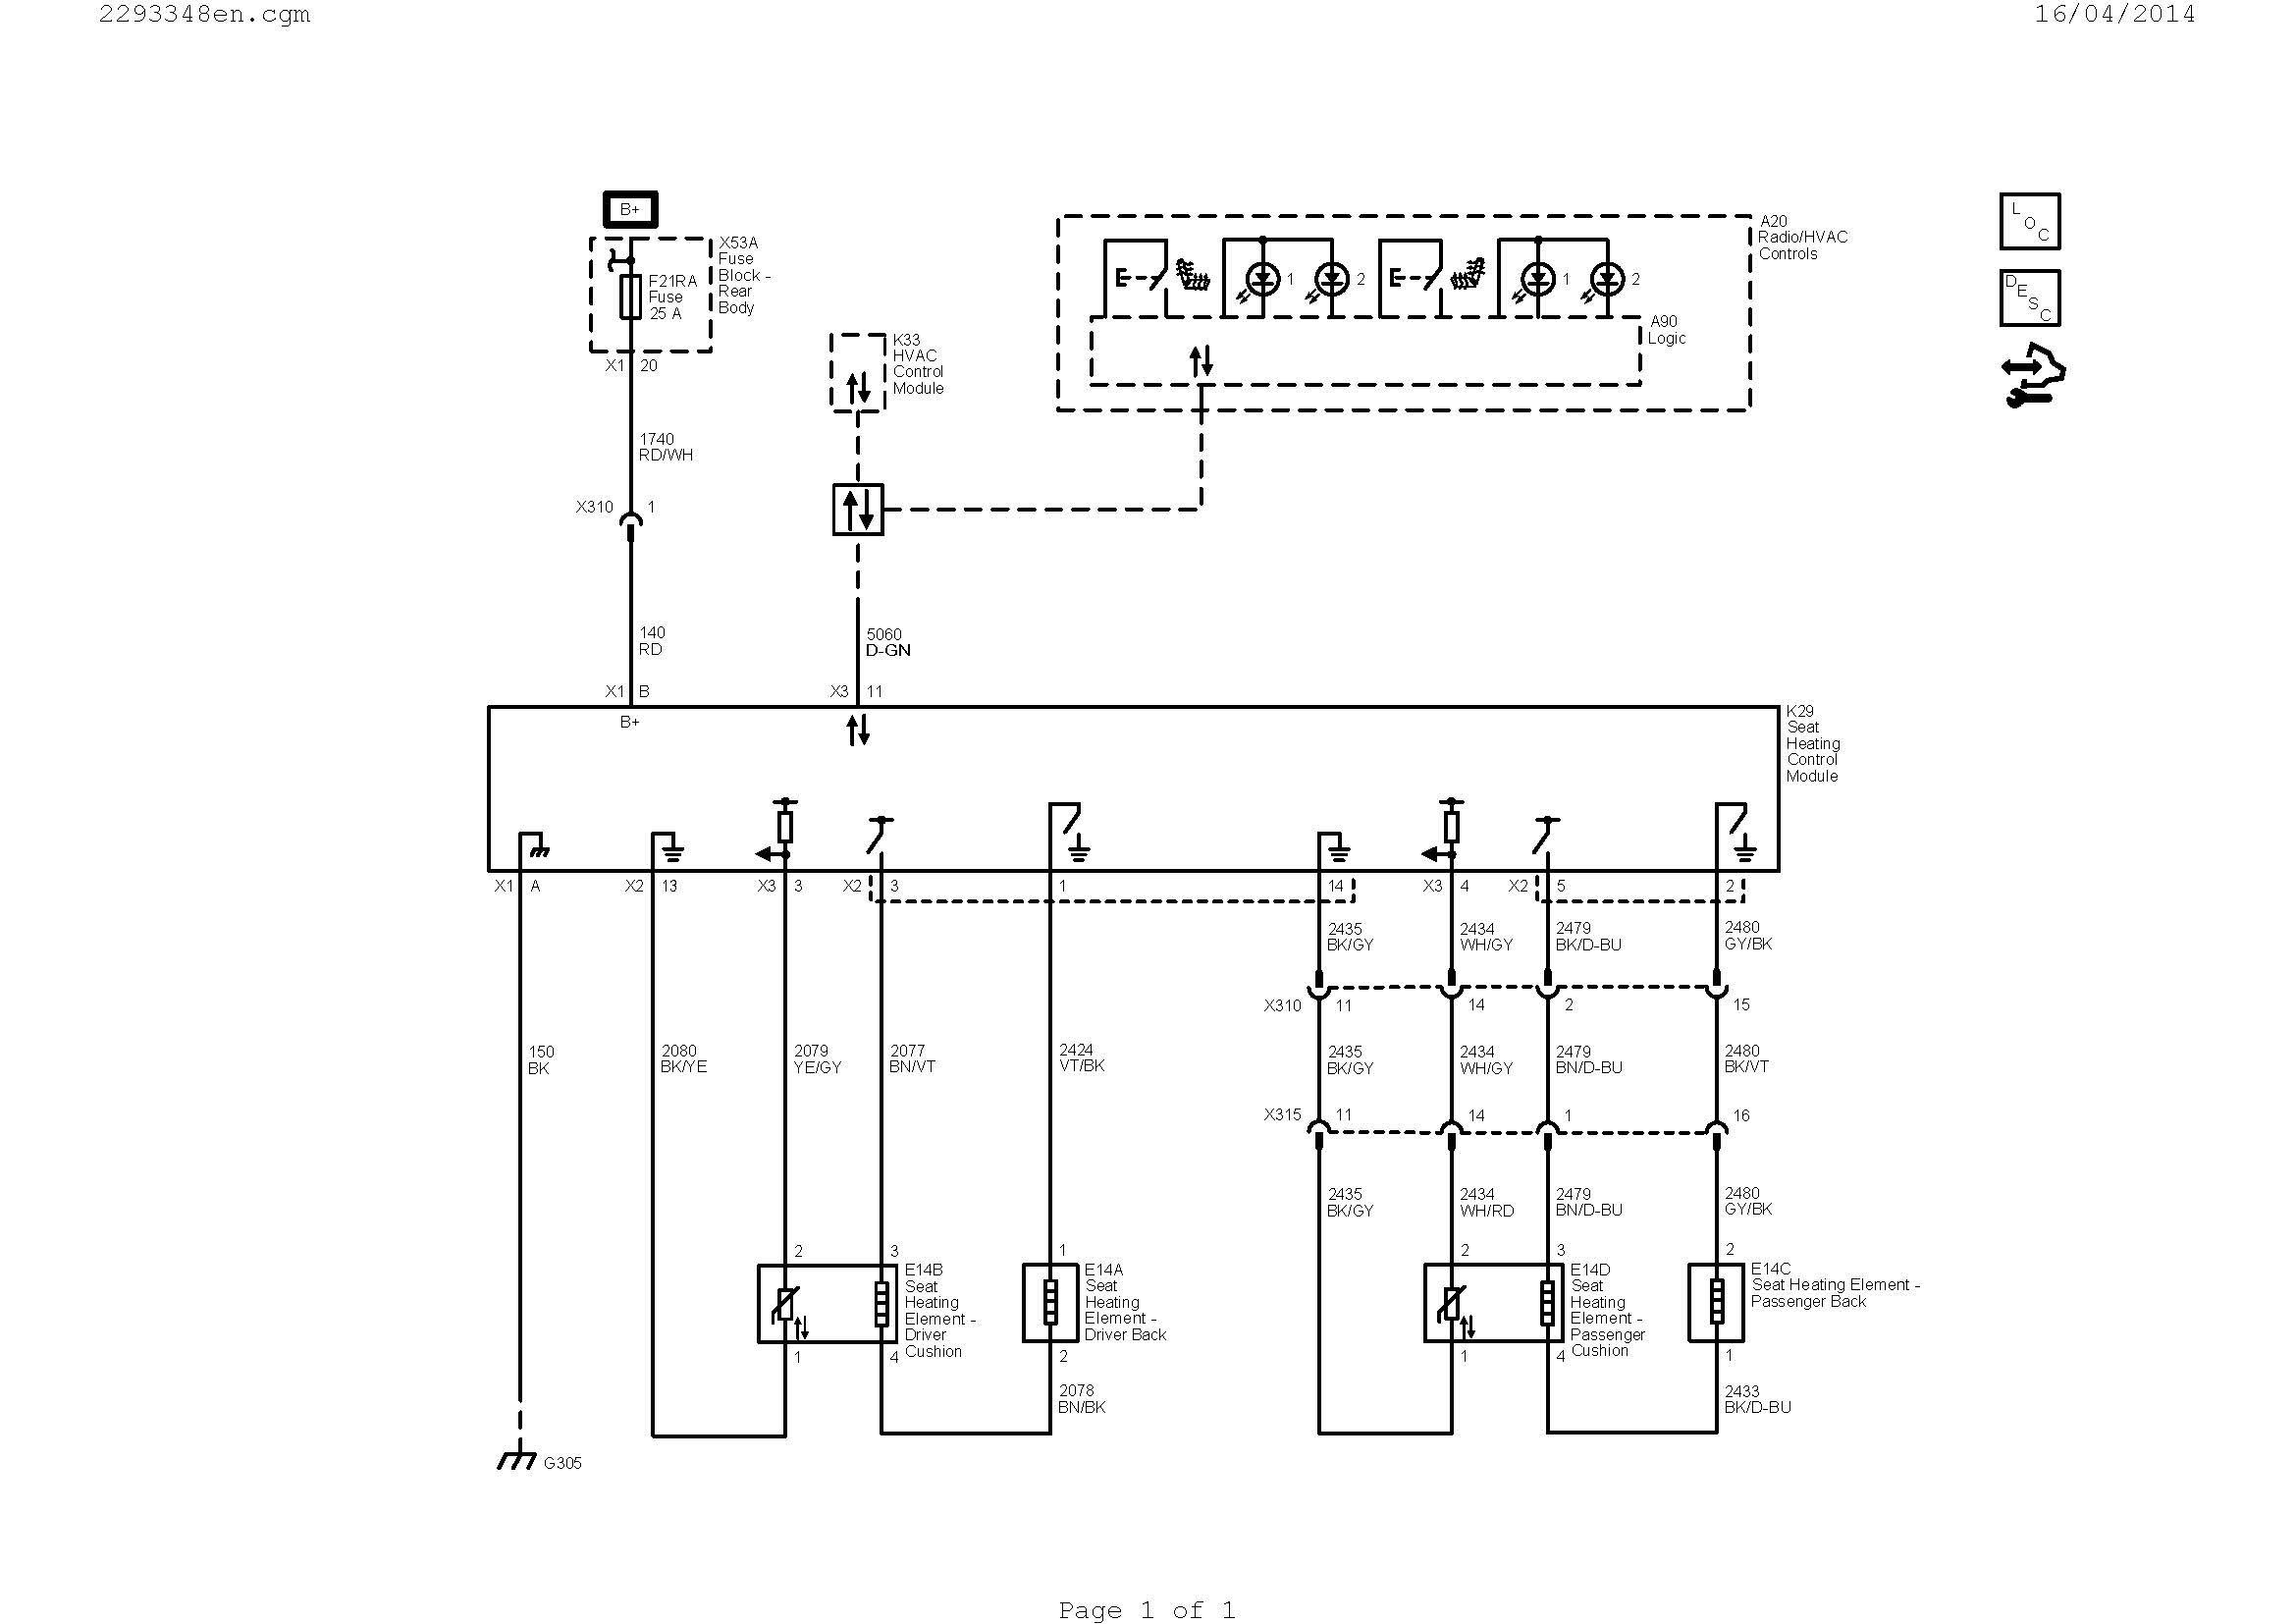 Pool Control Panel Wiring Diagram Wiring Schematic Diagram Swimming Pool  Plumbing Swimming Pool Electrical Panel Wiring Diagrams